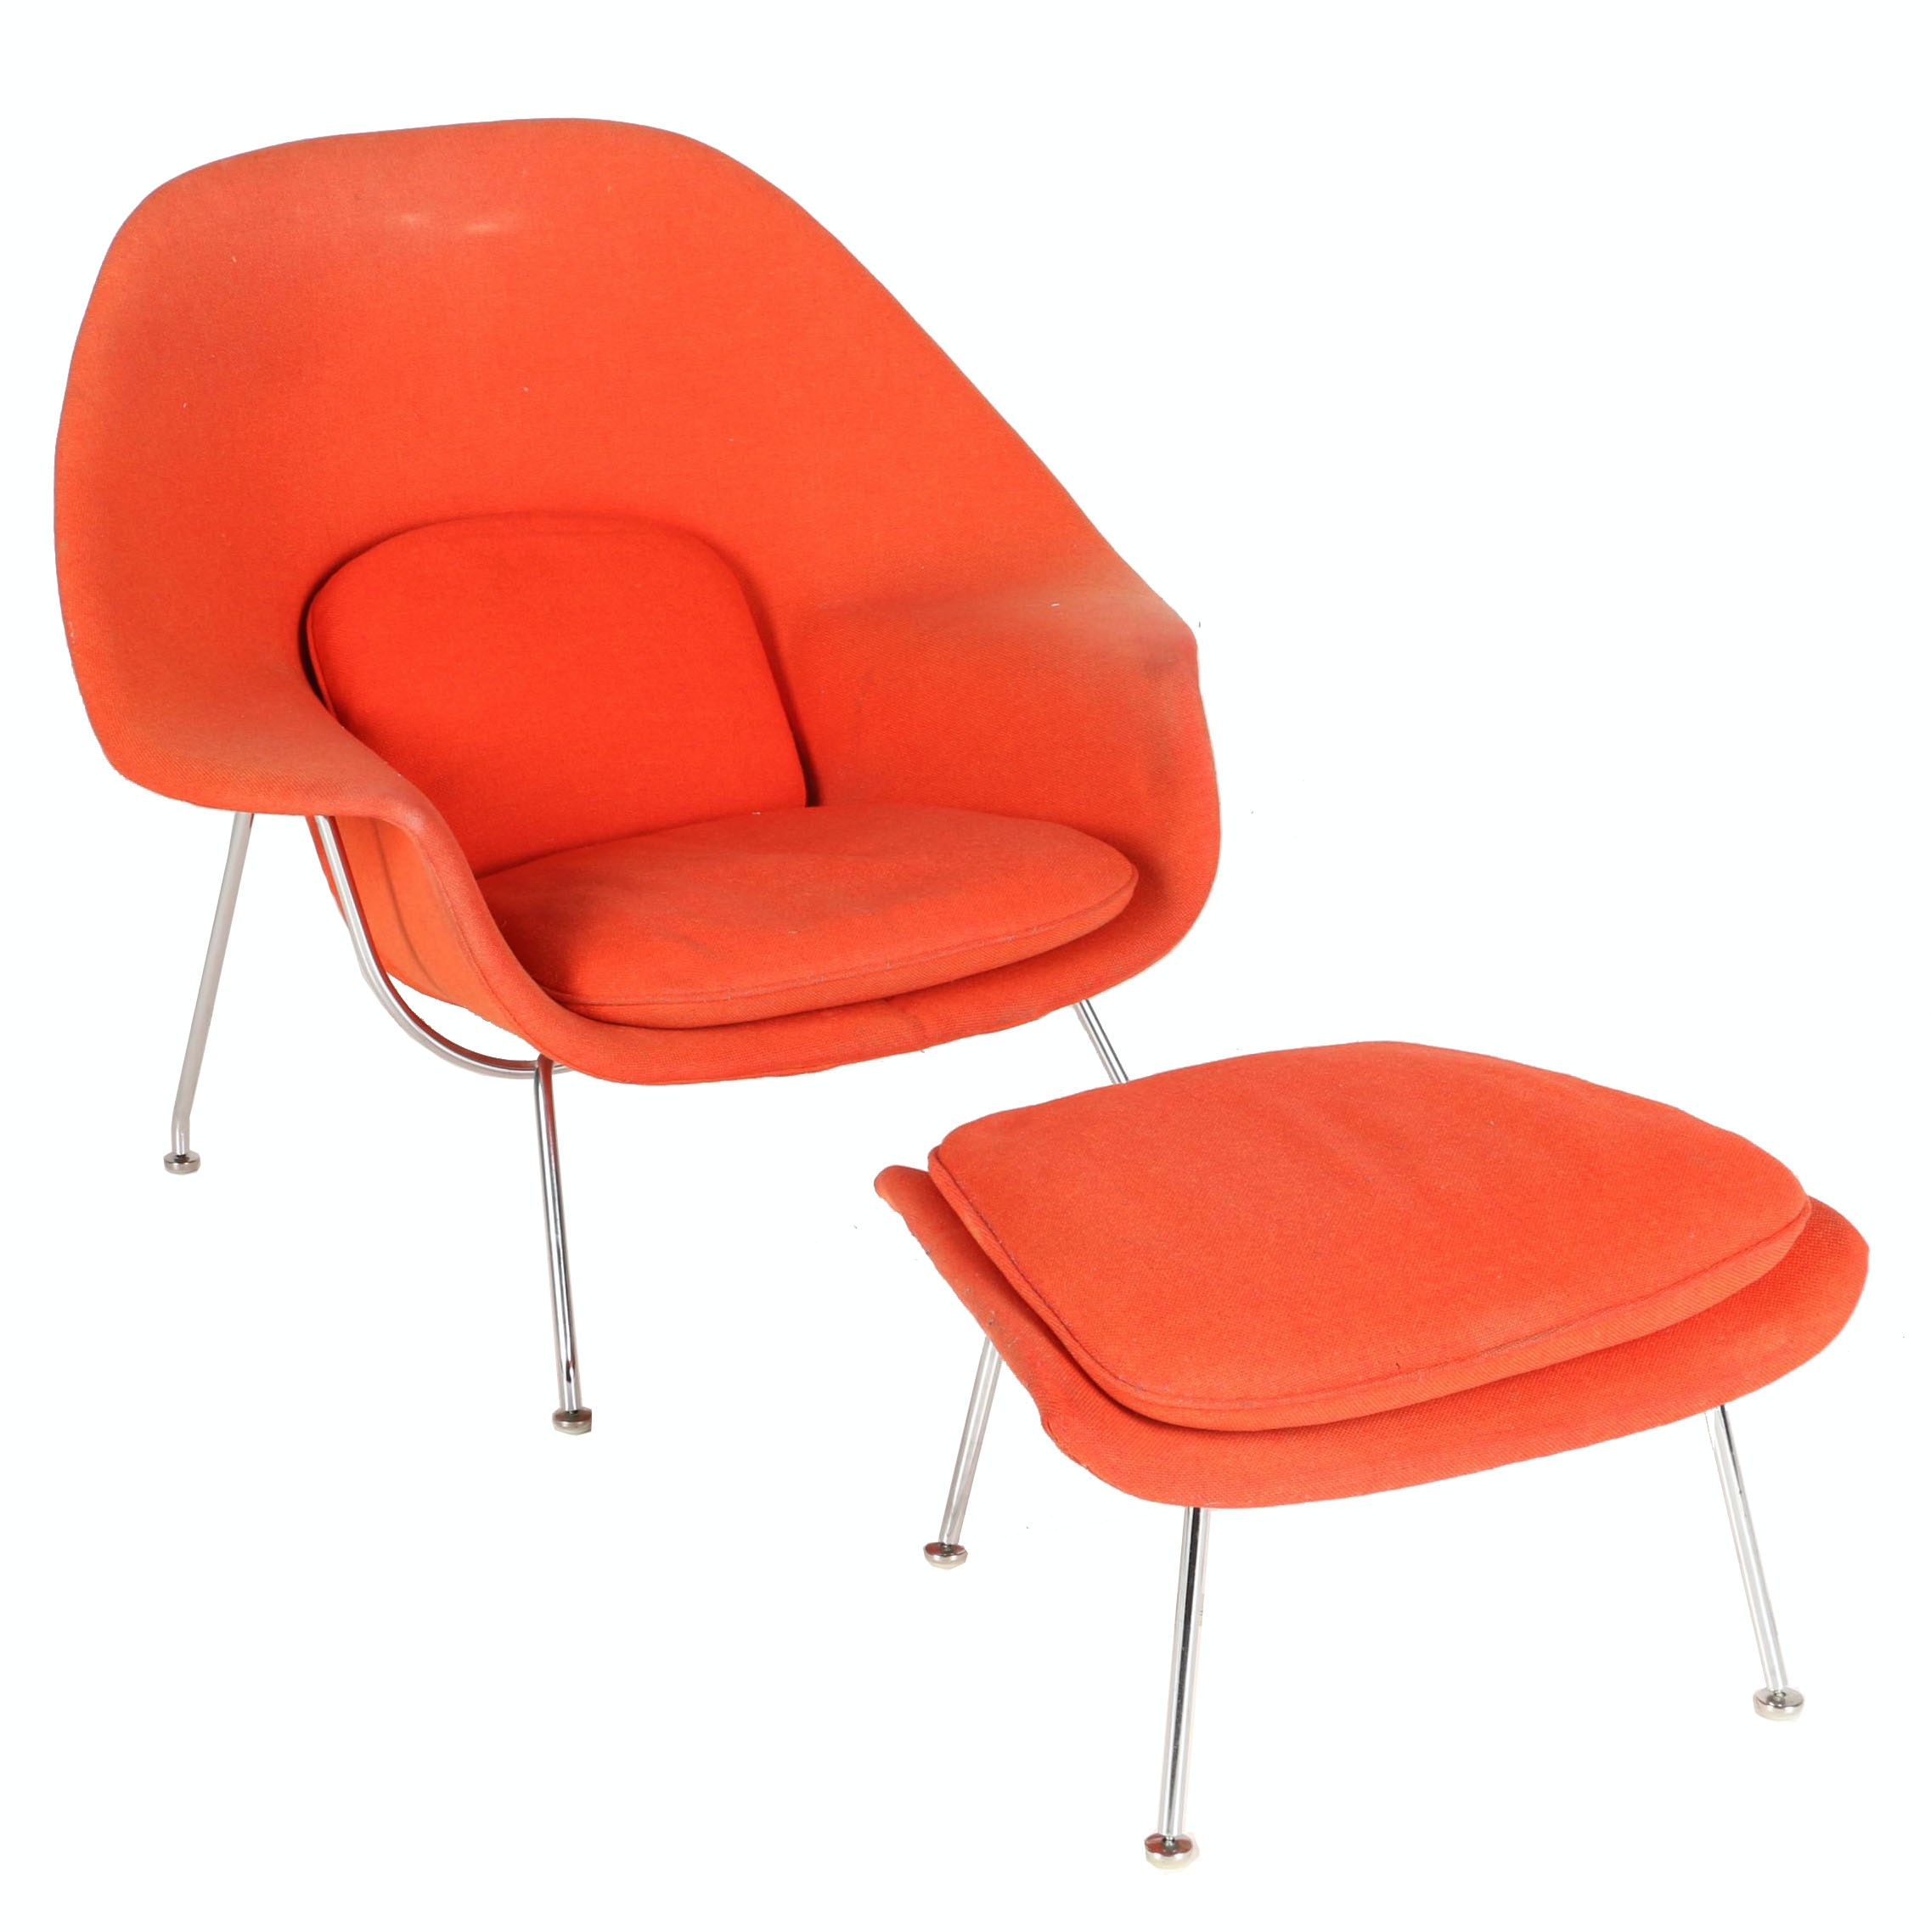 """Mid Century Modern """"Womb"""" Chair and Ottoman by Eero Saarinen for Knoll With Provenance"""